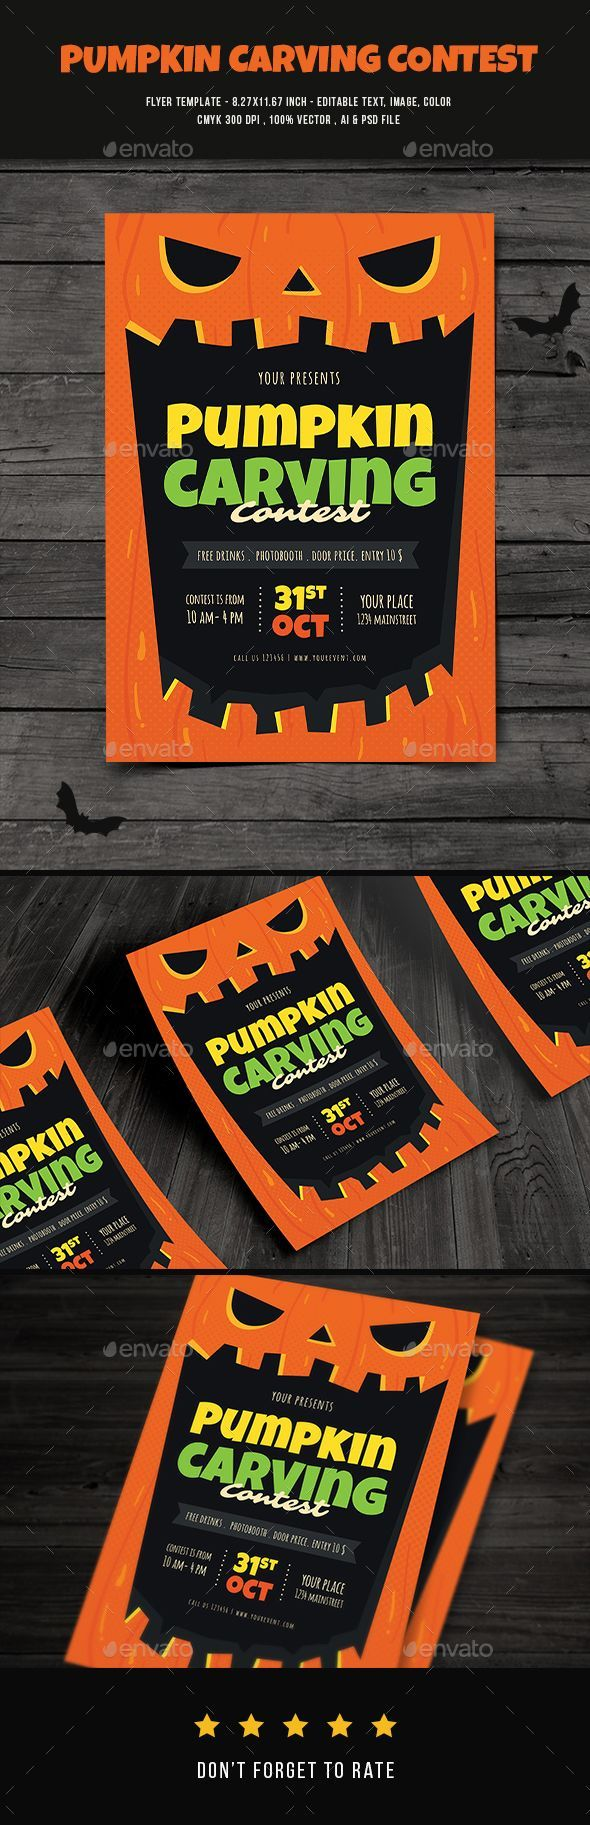 Pumpkin Carving Contest Flyer — Photoshop PSD #Pumpkin carving #halloween party • Available here → https://graphicriver.net/item/pumpkin-carving-contest-flyer/20669676?ref=pxcr